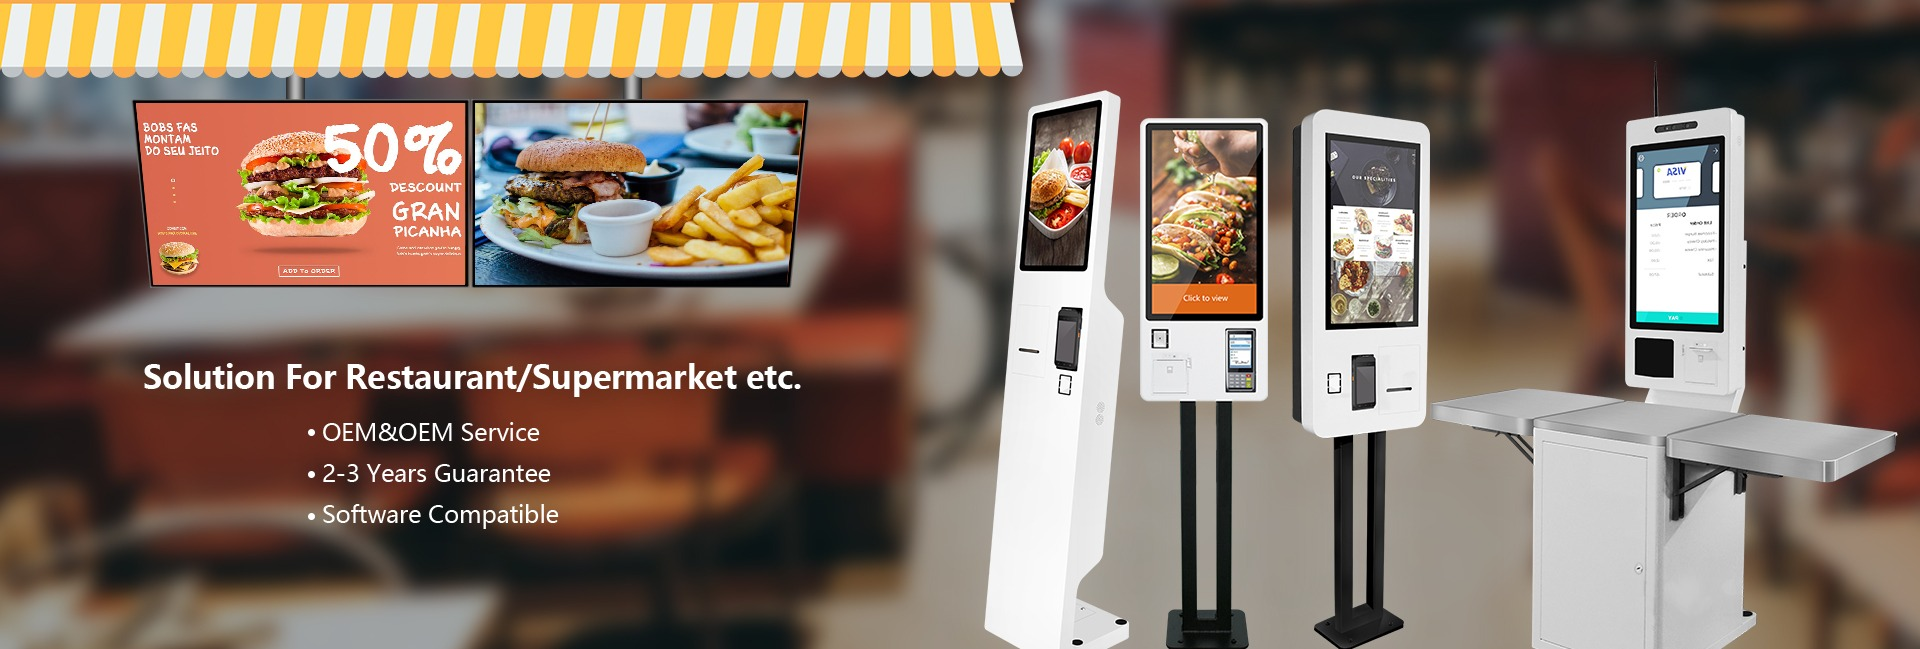 online ordering system for takeaway Digital Screens and self order kiosk